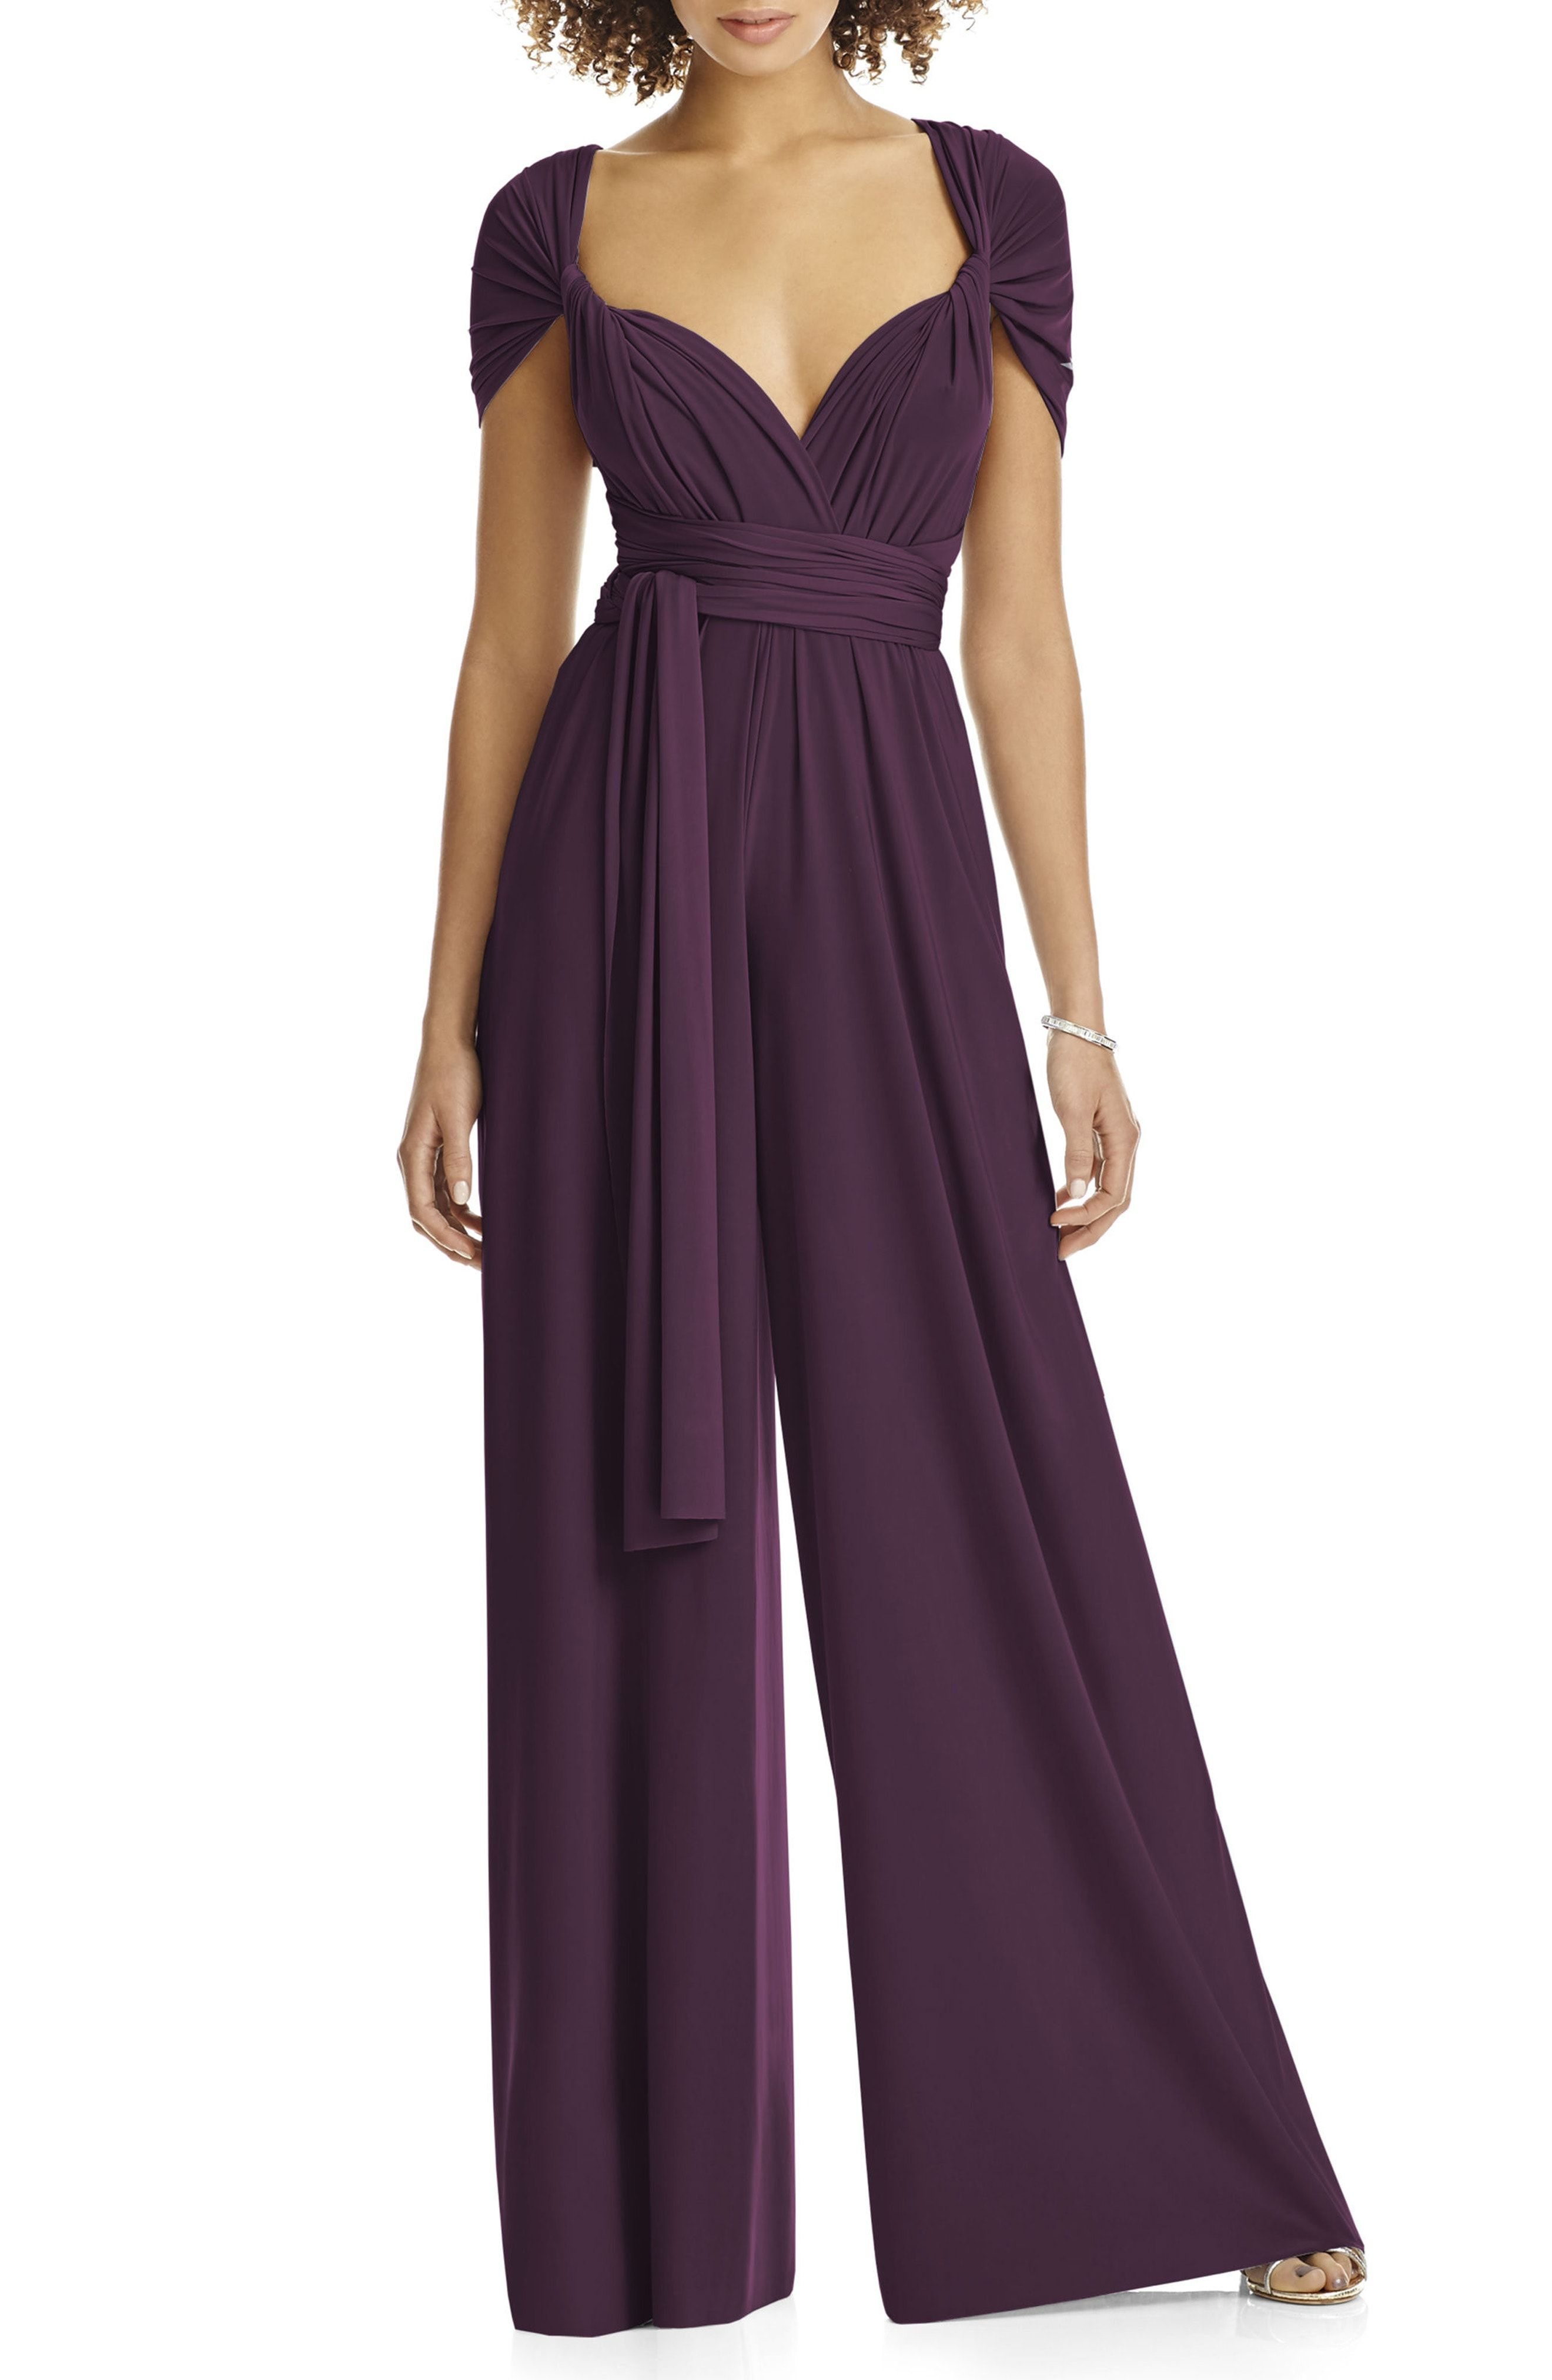 8251909b36a 25 Dressy Jumpsuits for Wedding Guests 2019 - Best Jumpsuits to Wear to a  Wedding